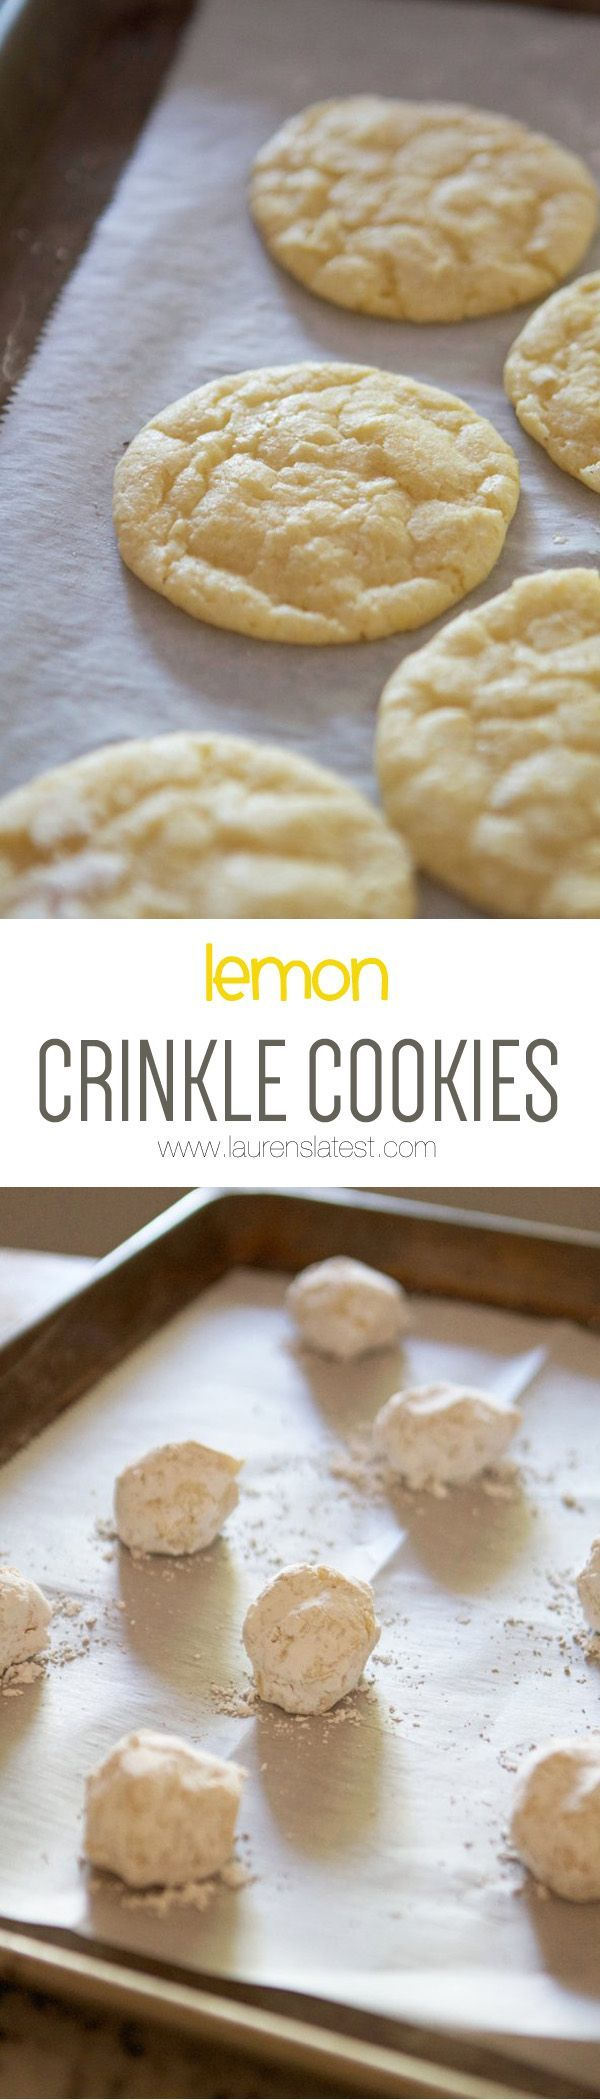 Lemon Crinkle Cookies... Lusciously lemony and simple to make!